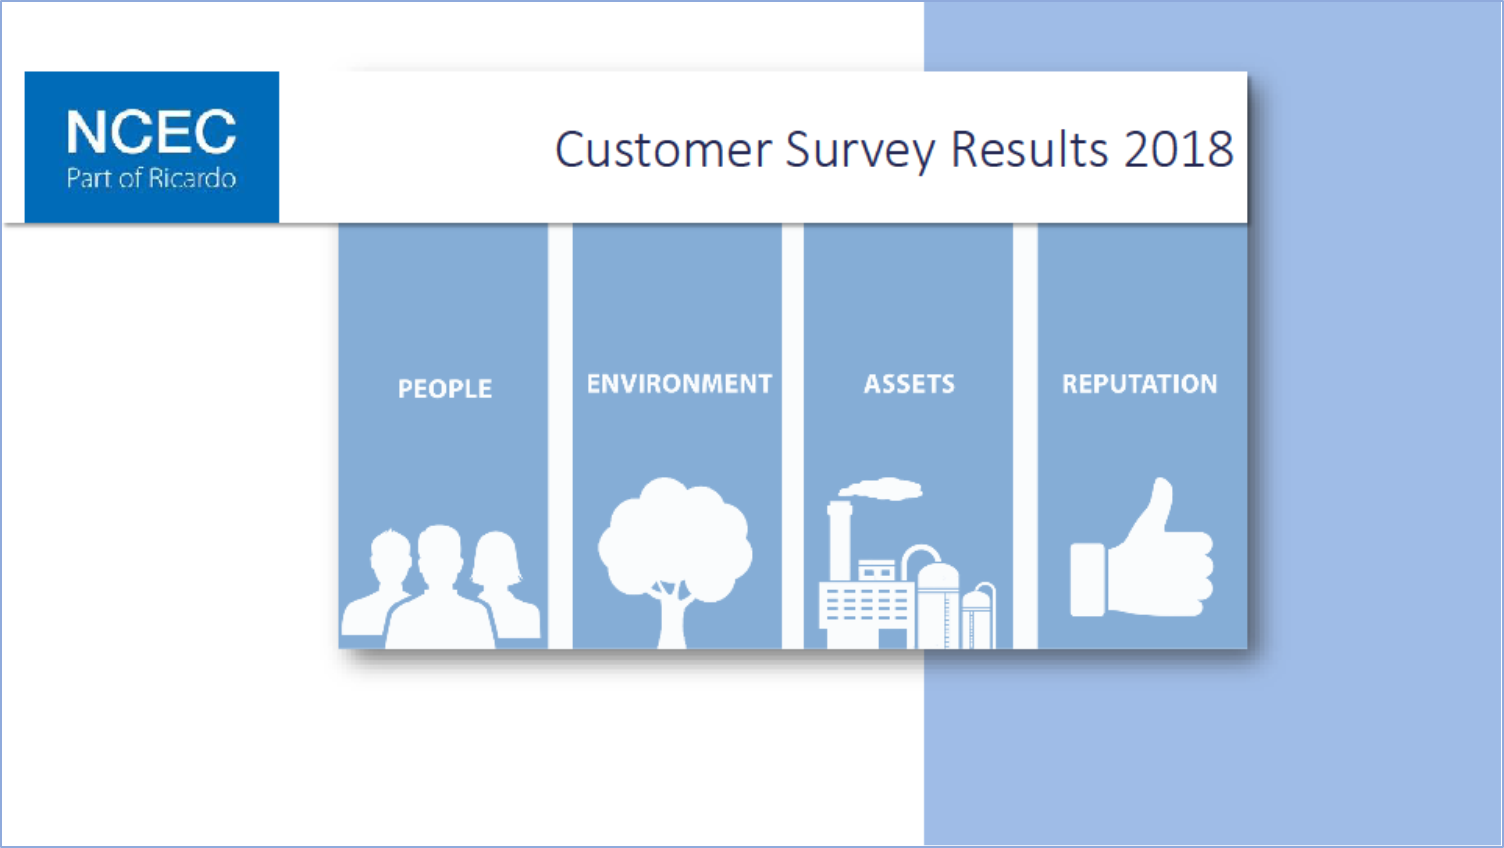 NCEC customer survey 2018 results